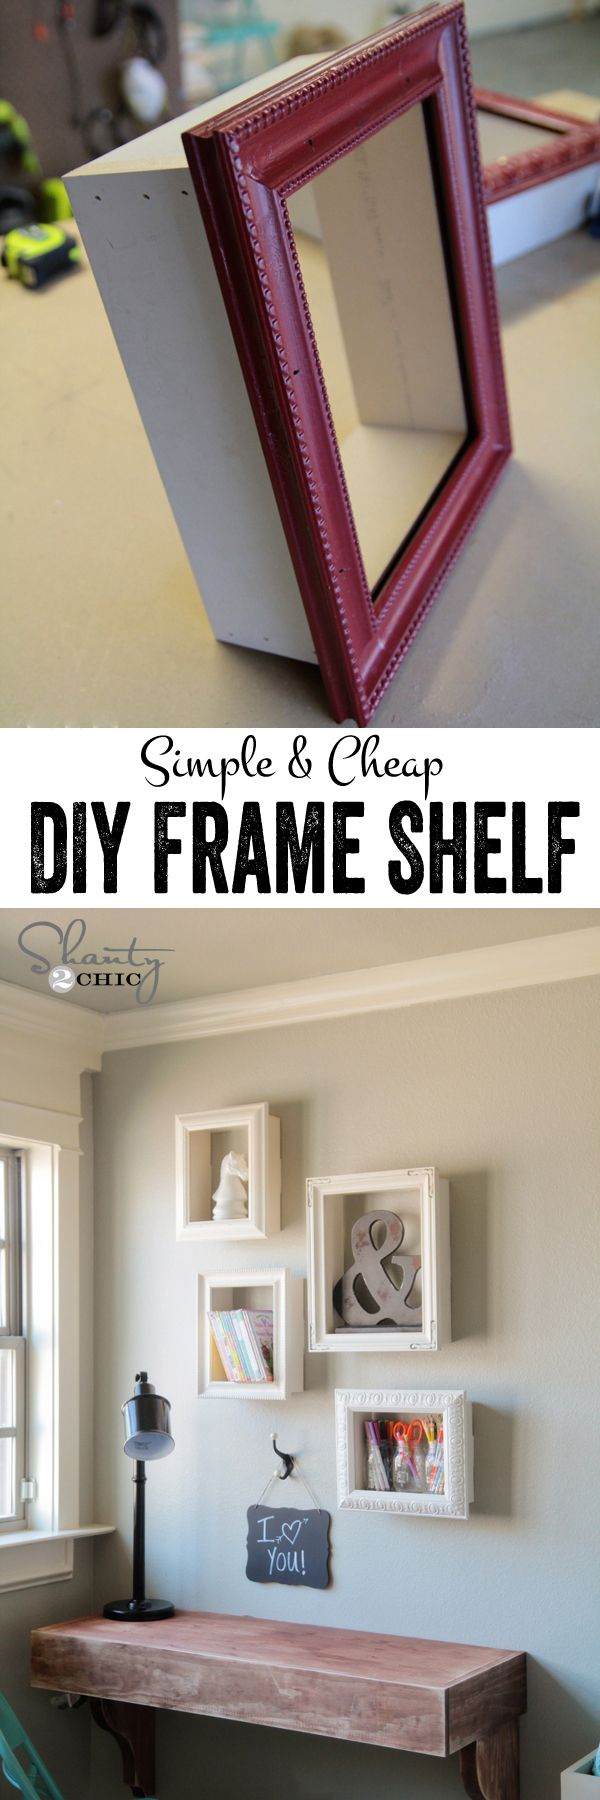 DIY display shelves using cheap frames | www.shanty-2-chic.com